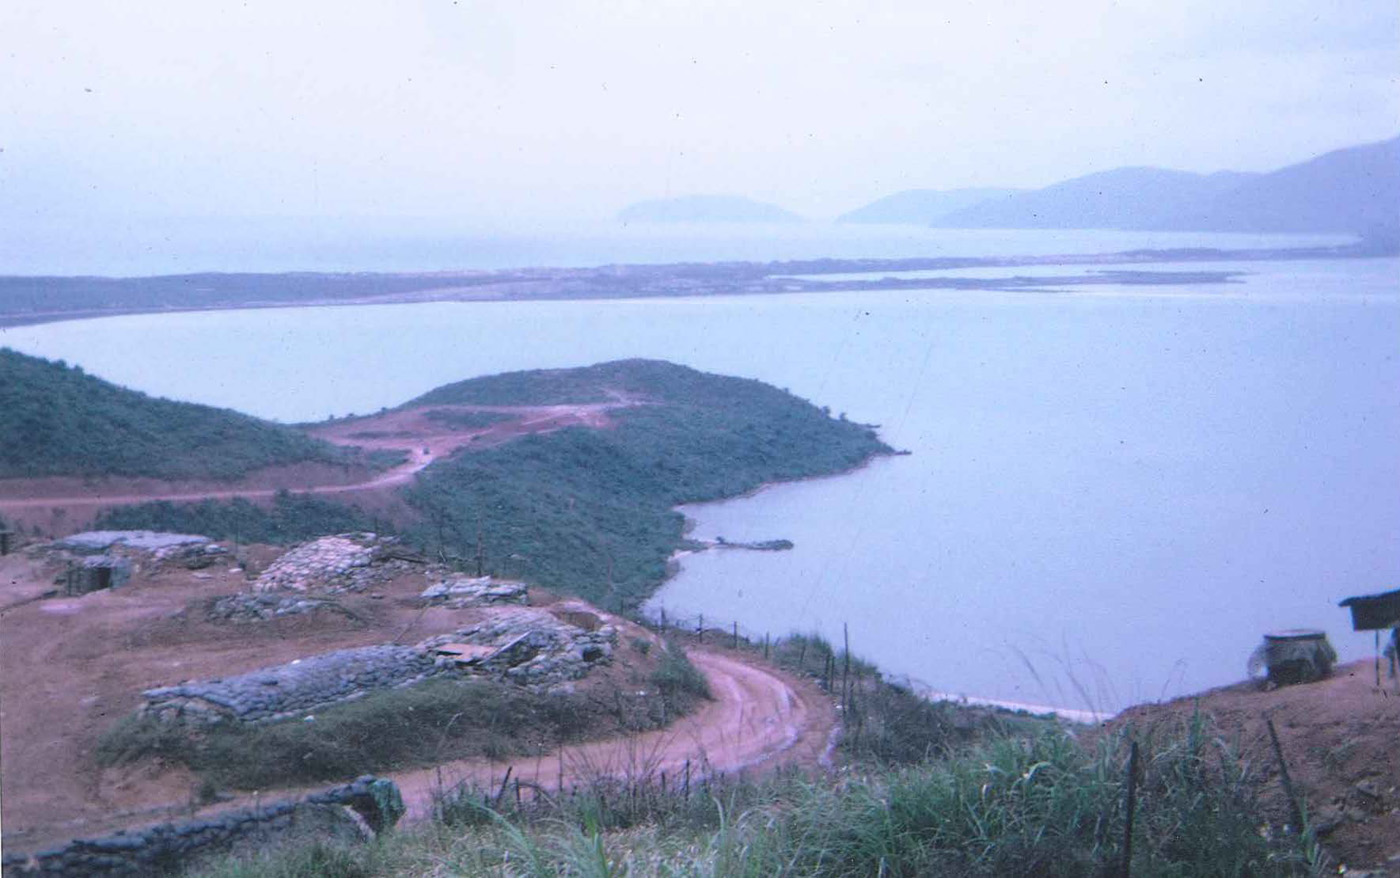 View from top level of Hill 90 overlooking the South China Sea and highway #1 – photo taken in March 1968